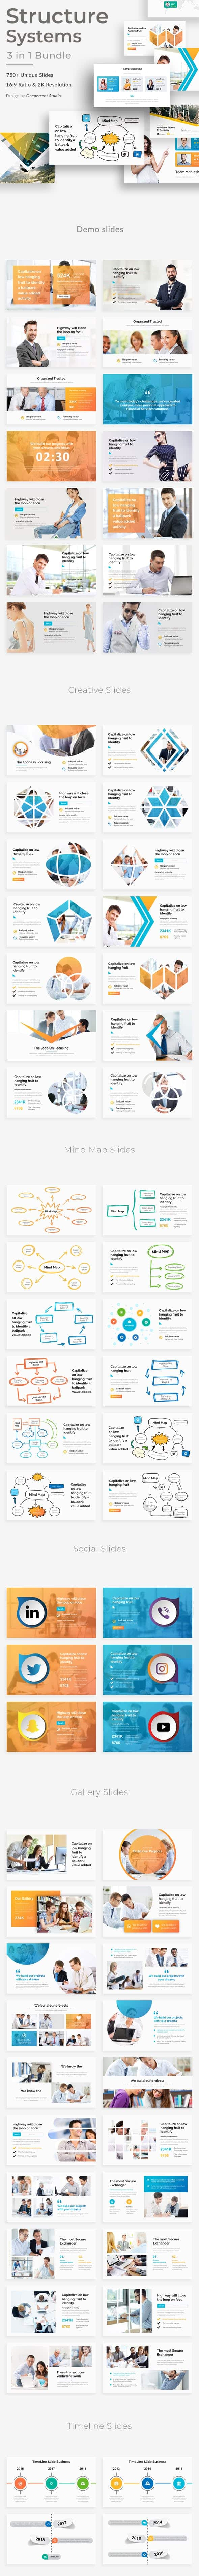 structure system 3 in 1 pitch deck bundle powerpoint template